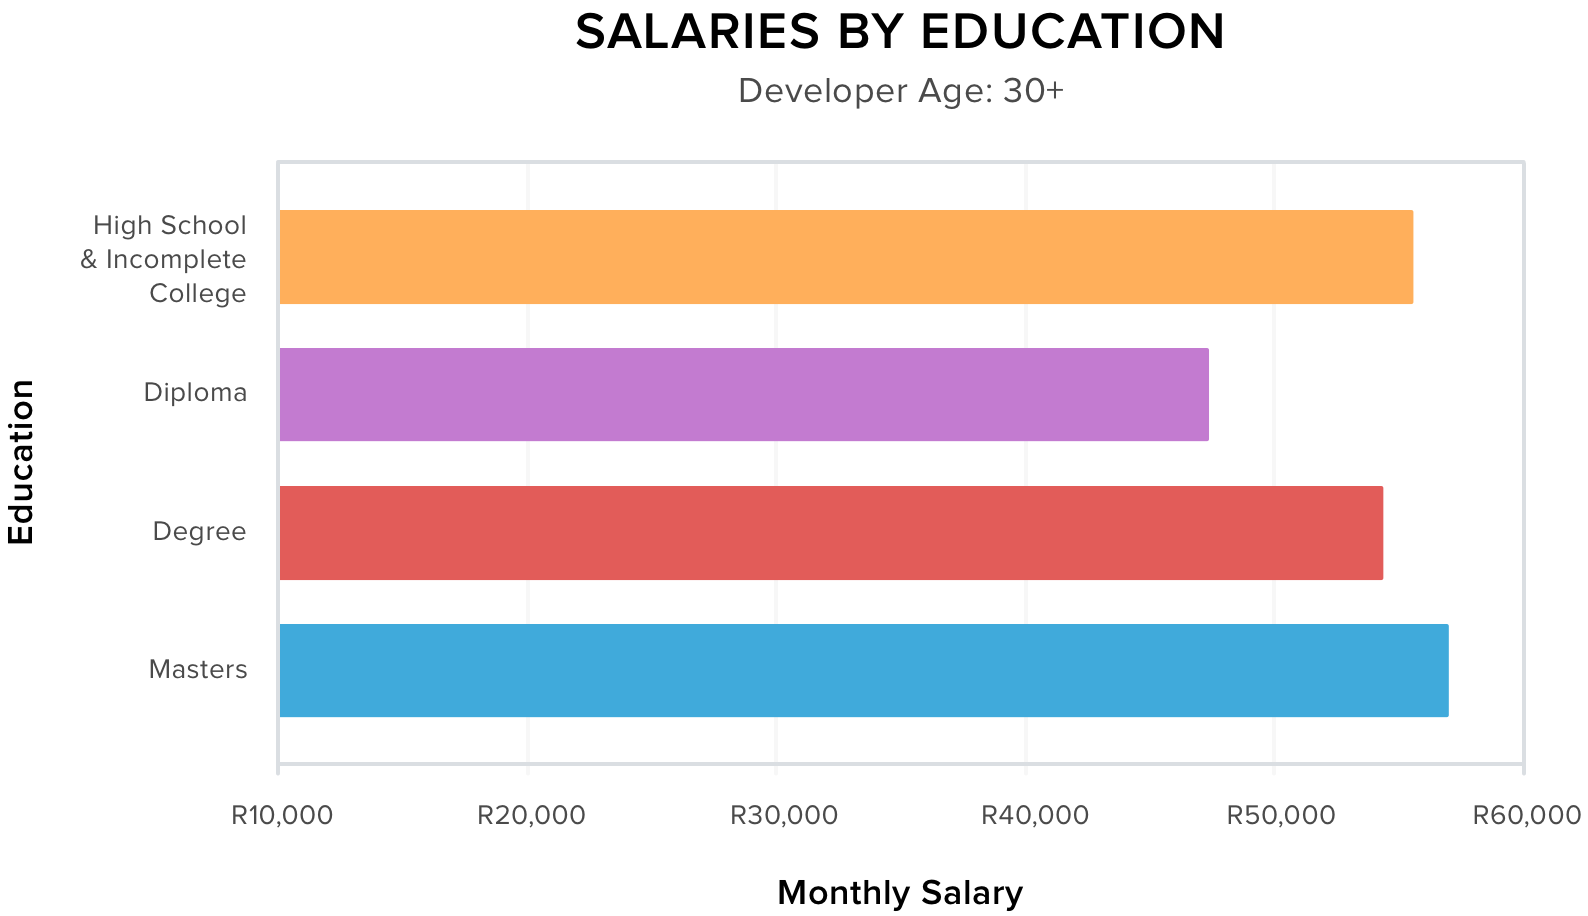 Salaries for developers aged 30+